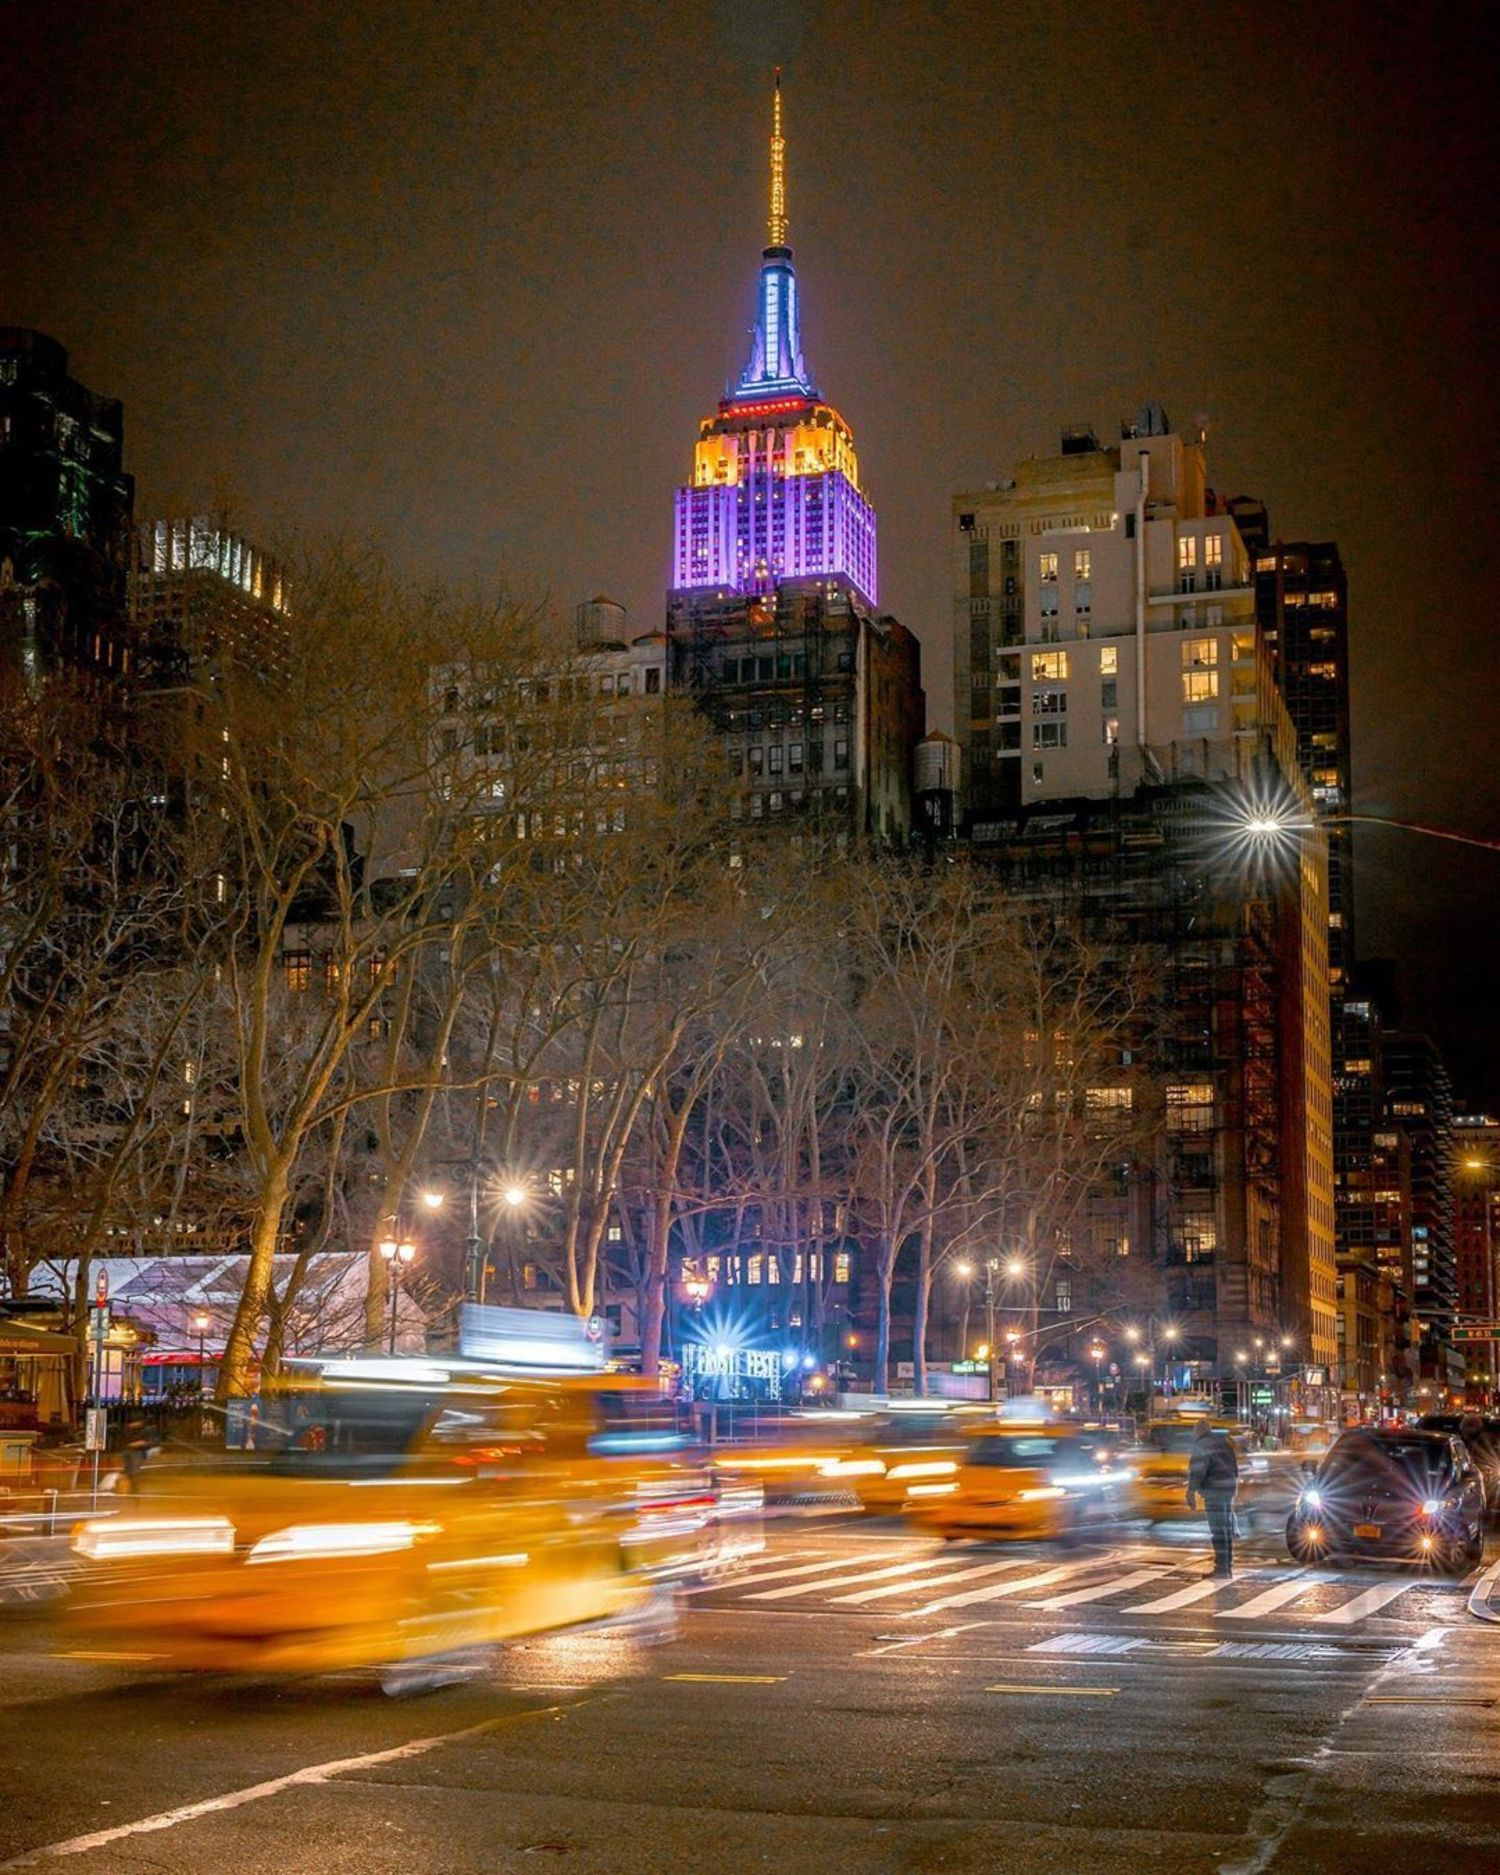 Empire State Building lit for Kobe Bryant, Midtown, Manhattan